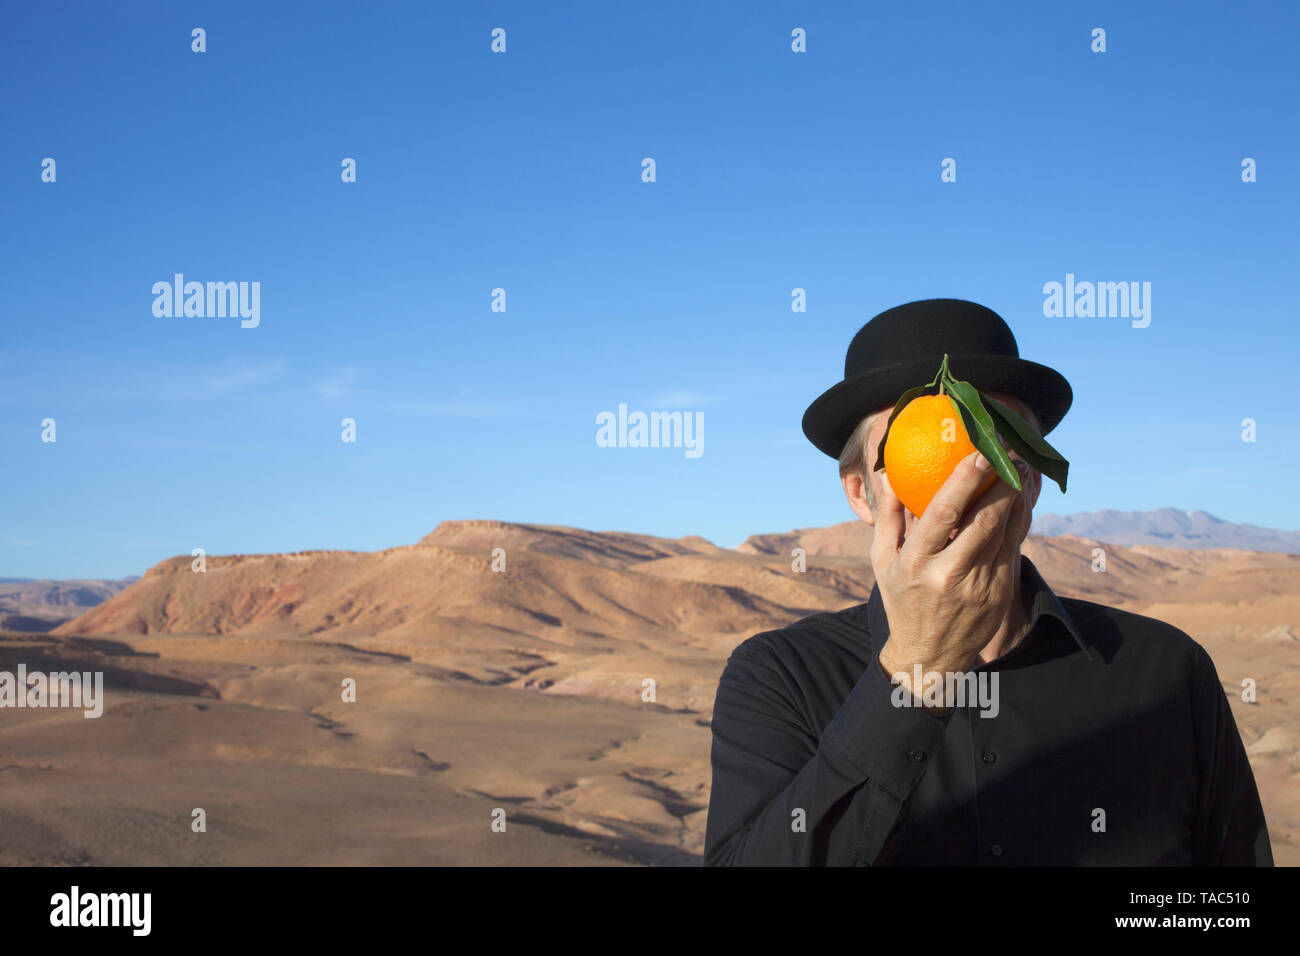 Morocco, Ounila Valley, man wearing a bowler hat holding an orange in front of his face - Stock Image